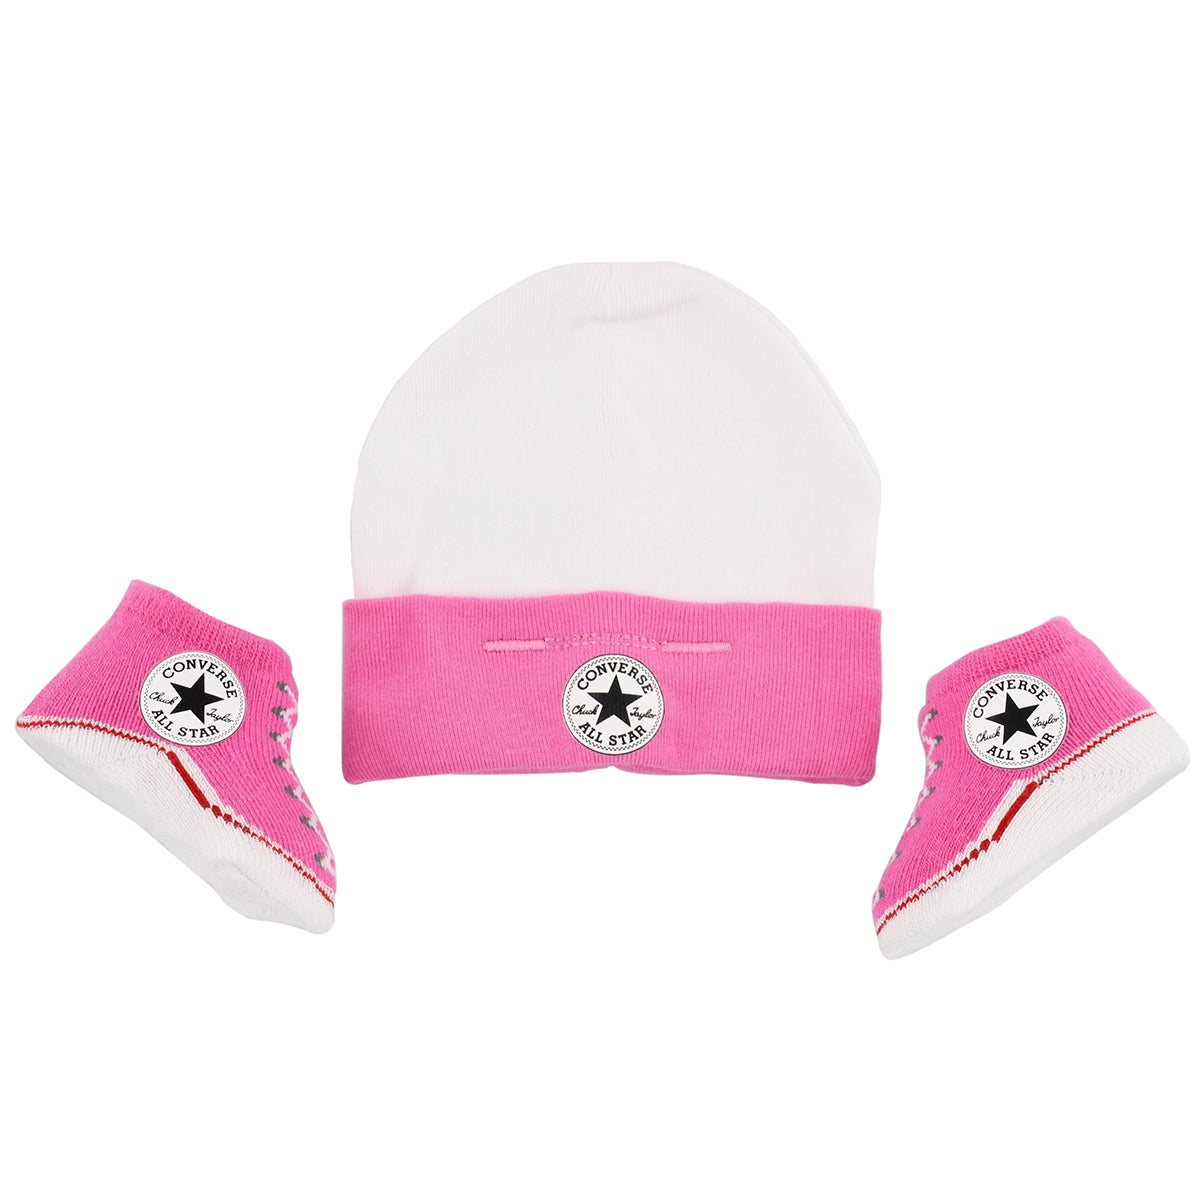 Infs Converse pink hat and bootie combo